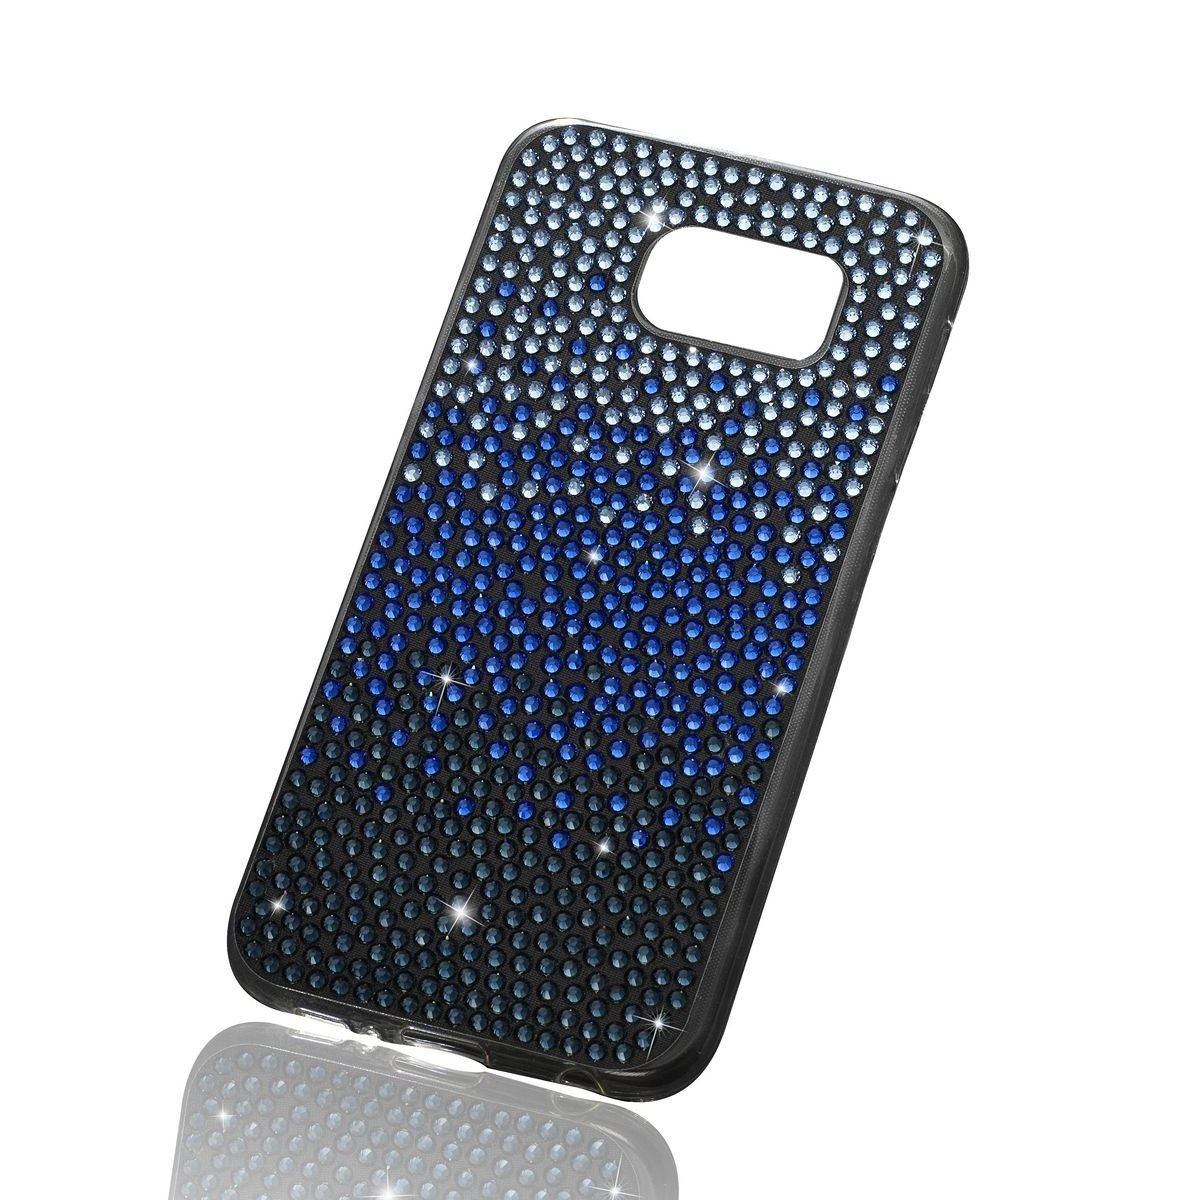 Cover iPhone 6 in 40069 Zola Predosa